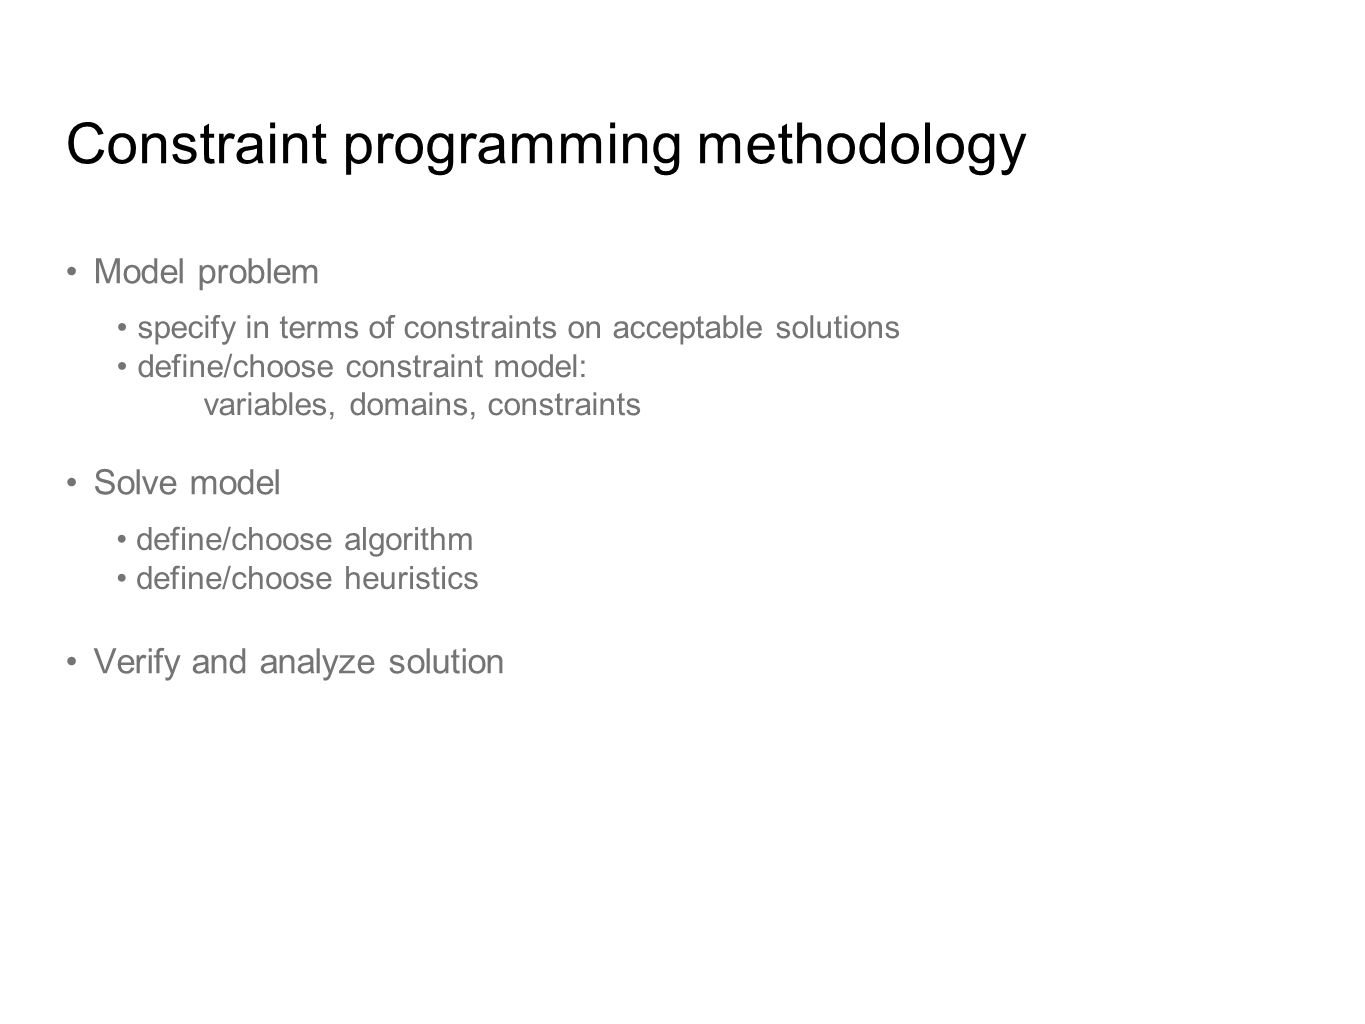 Constraint programming methodology Model problem Solve model Verify and analyze solution specify in terms of constraints on acceptable solutions define/choose constraint model: variables, domains, constraints define/choose algorithm define/choose heuristics Constraint Satisfaction Problem